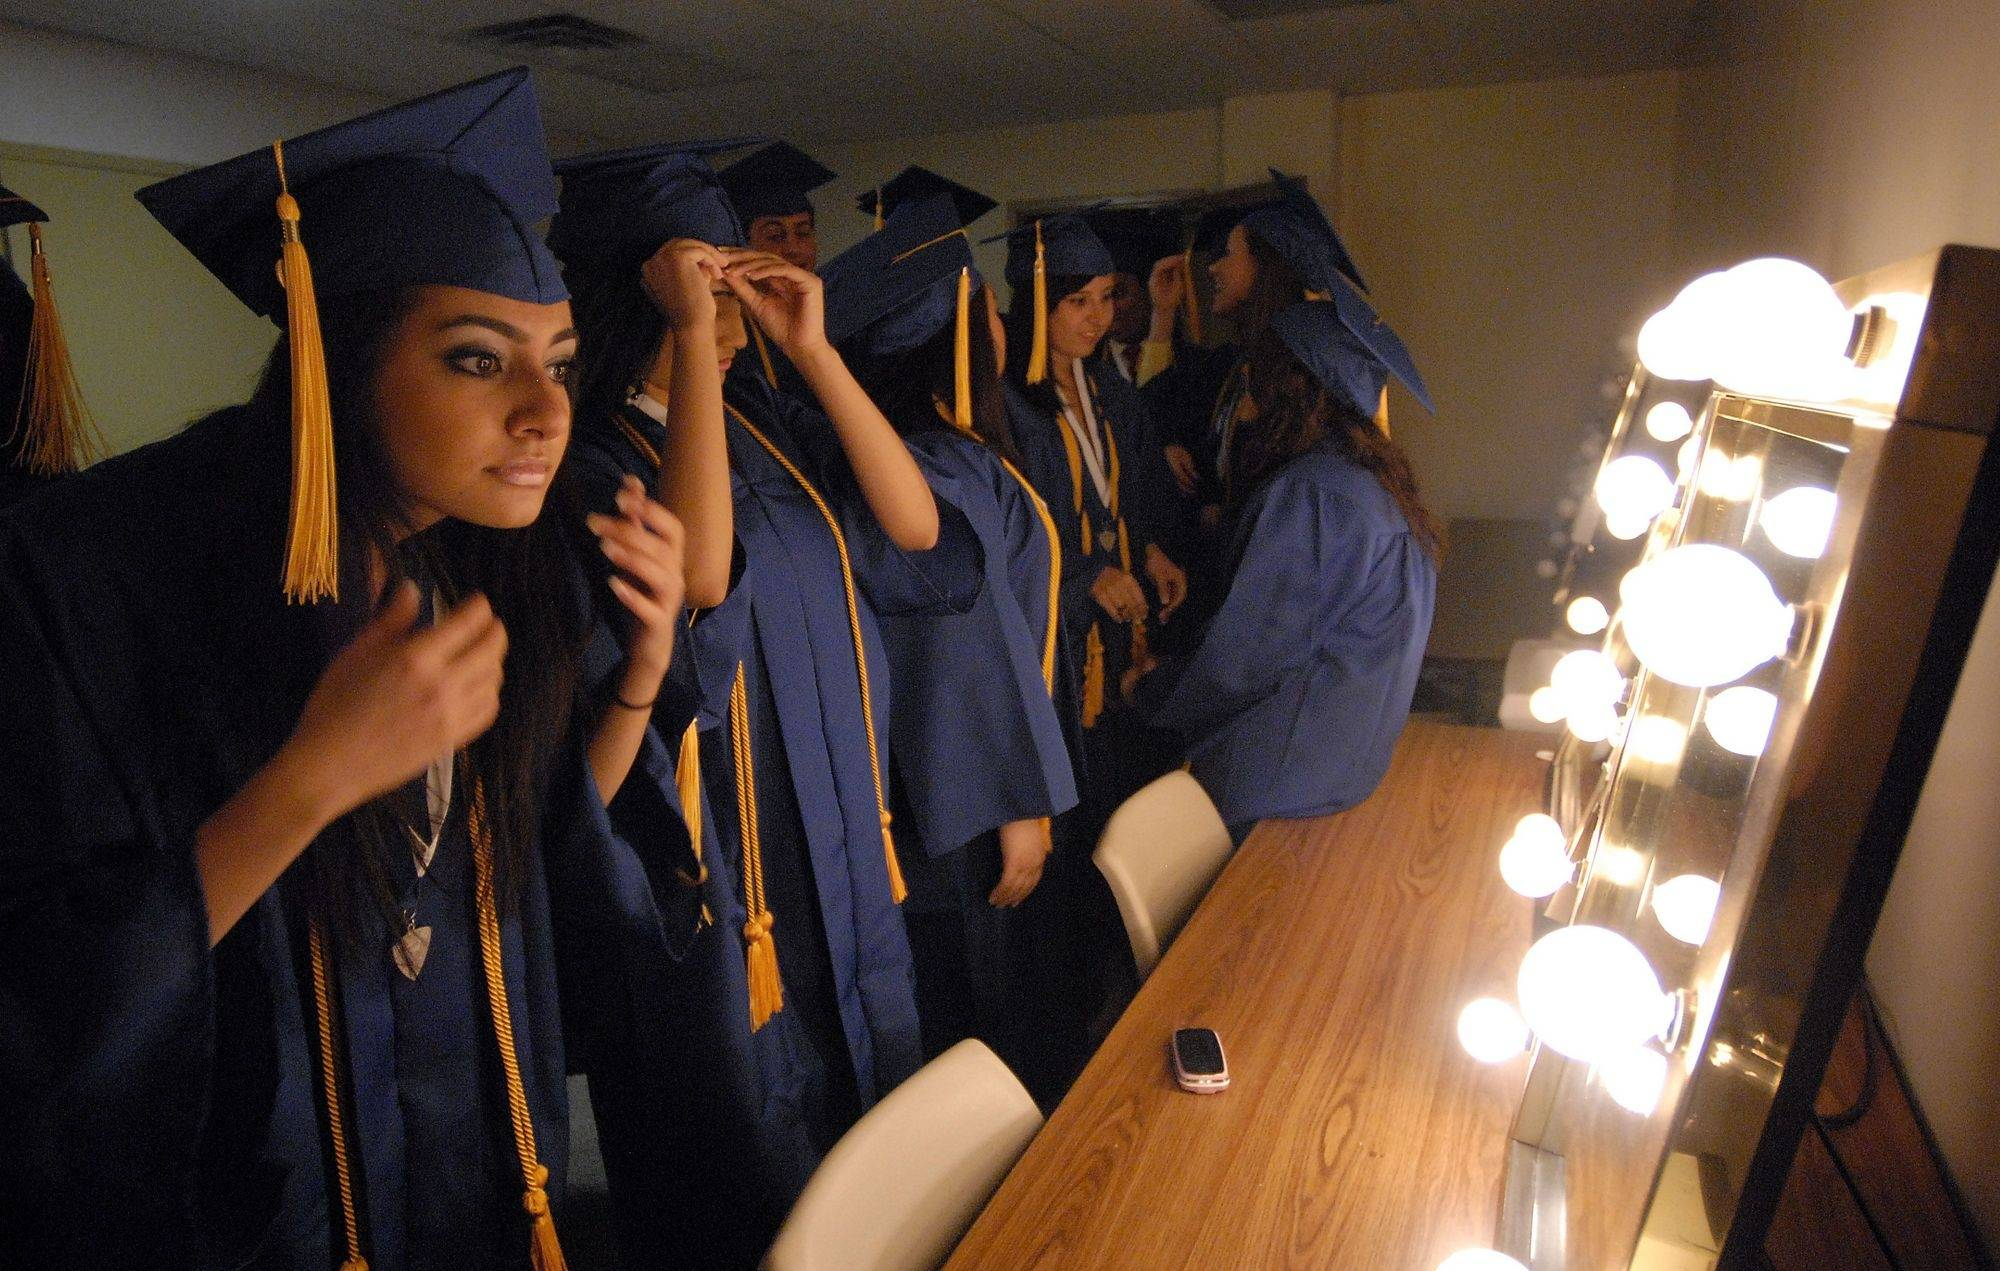 Nelli Choudanian,18, of Des Plaines gets ready for her graduation at the Rosemont Theatre .